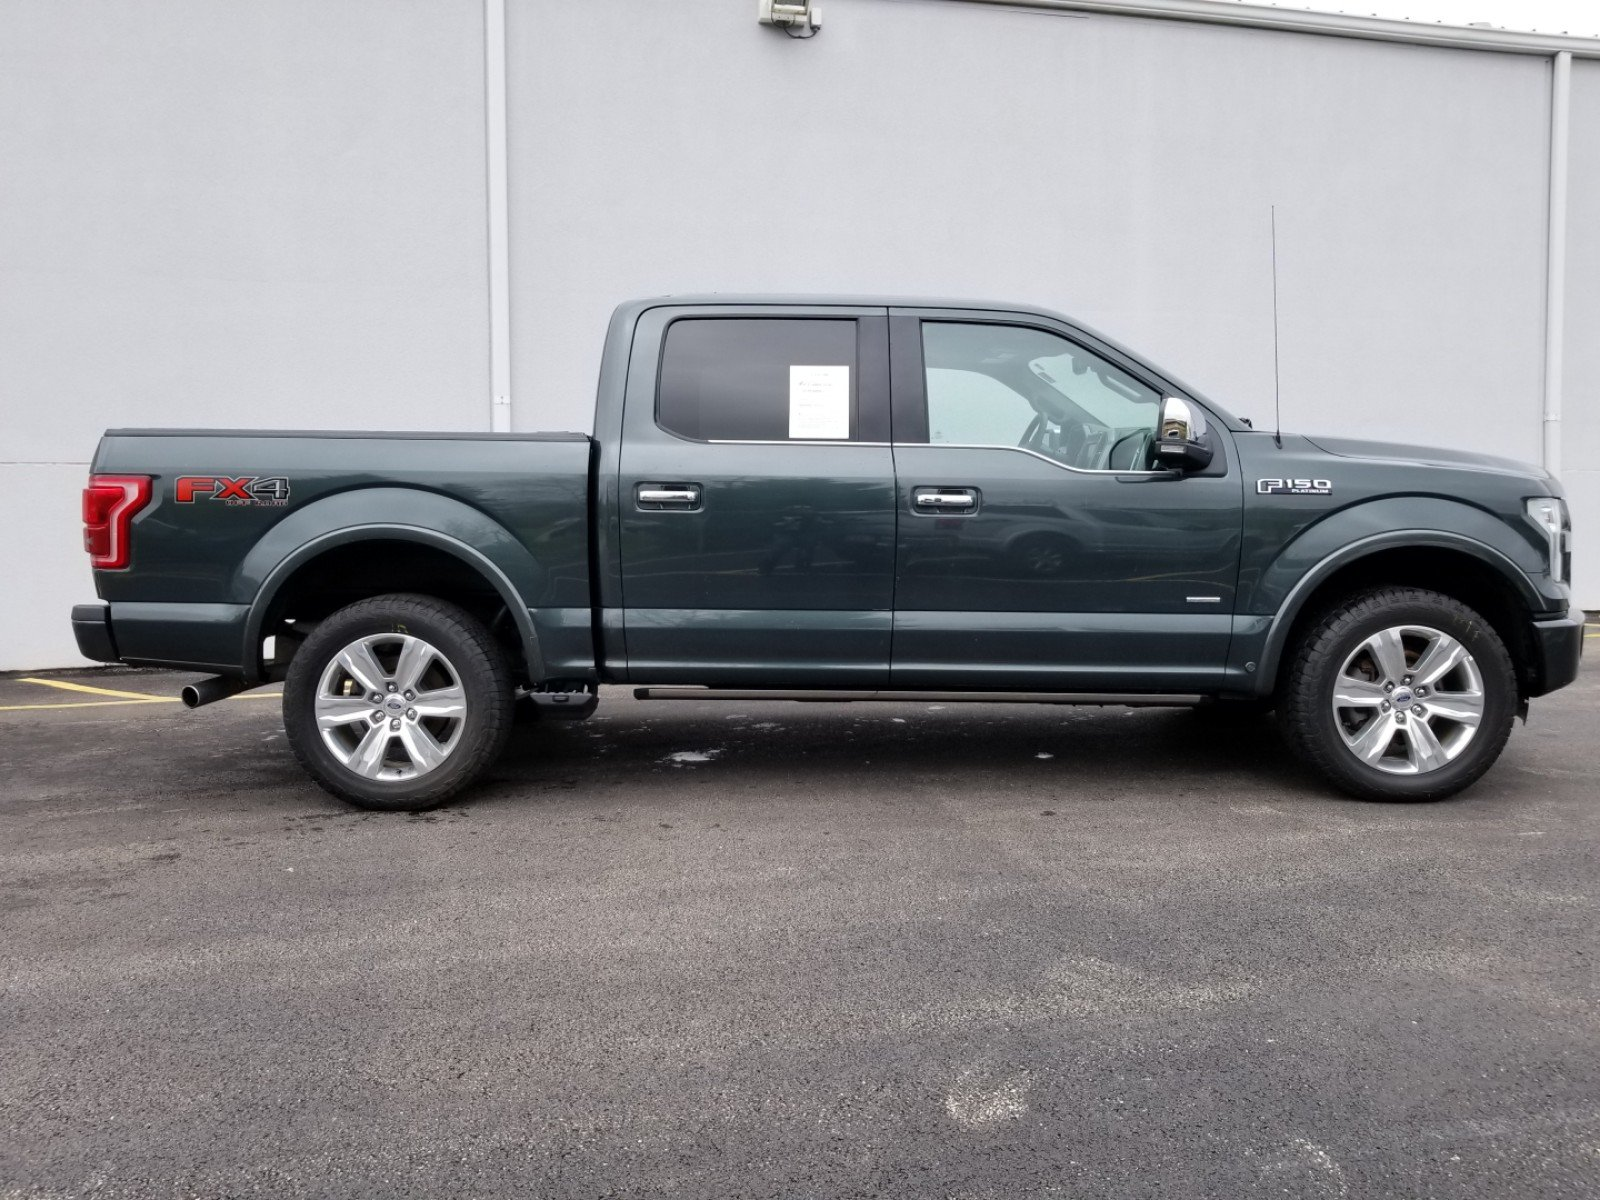 Certified Pre-Owned 2015 Ford F-150 Platinum 701A Ecoboost Crew